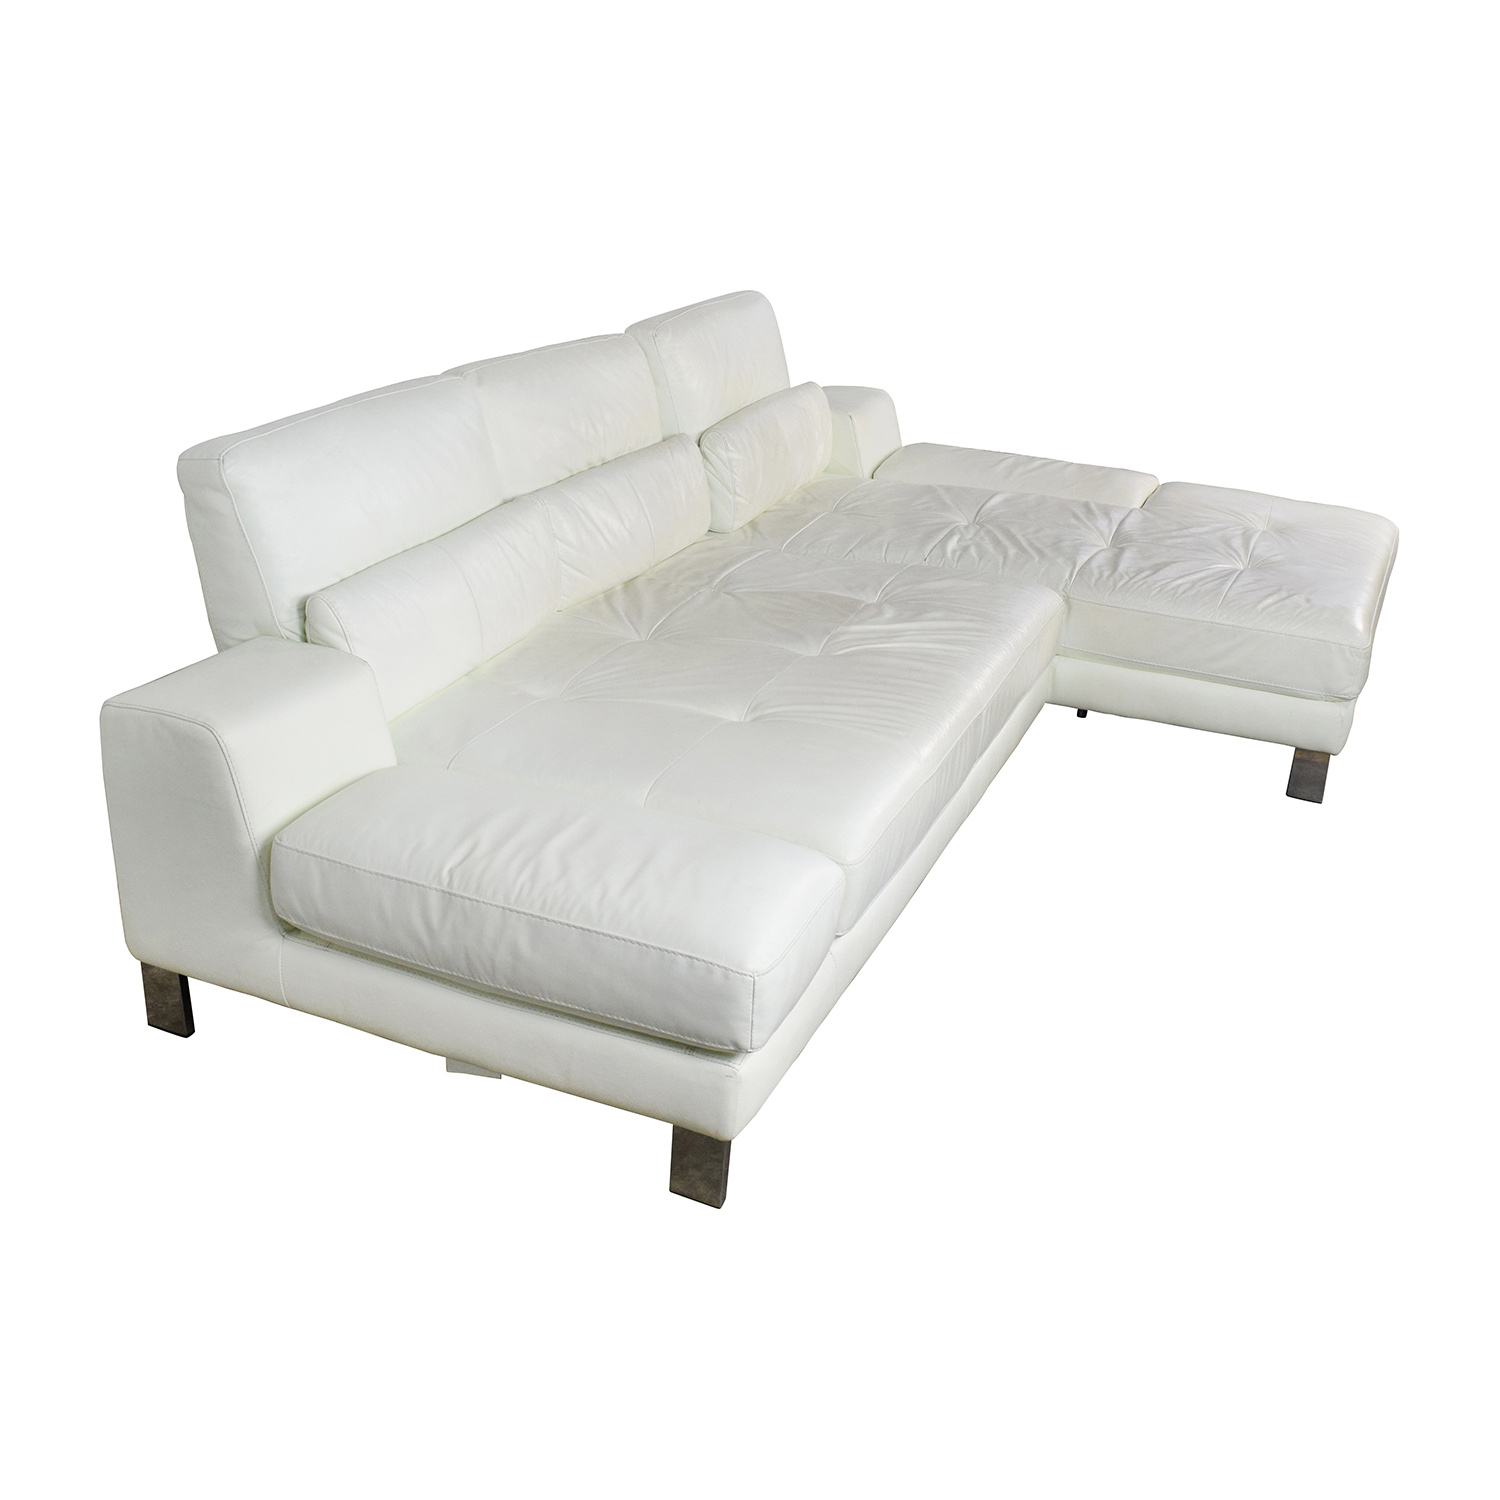 Genuine Leather Sectional Sofa Canada: Mobilia Canada Mobilia Canada Funktion White